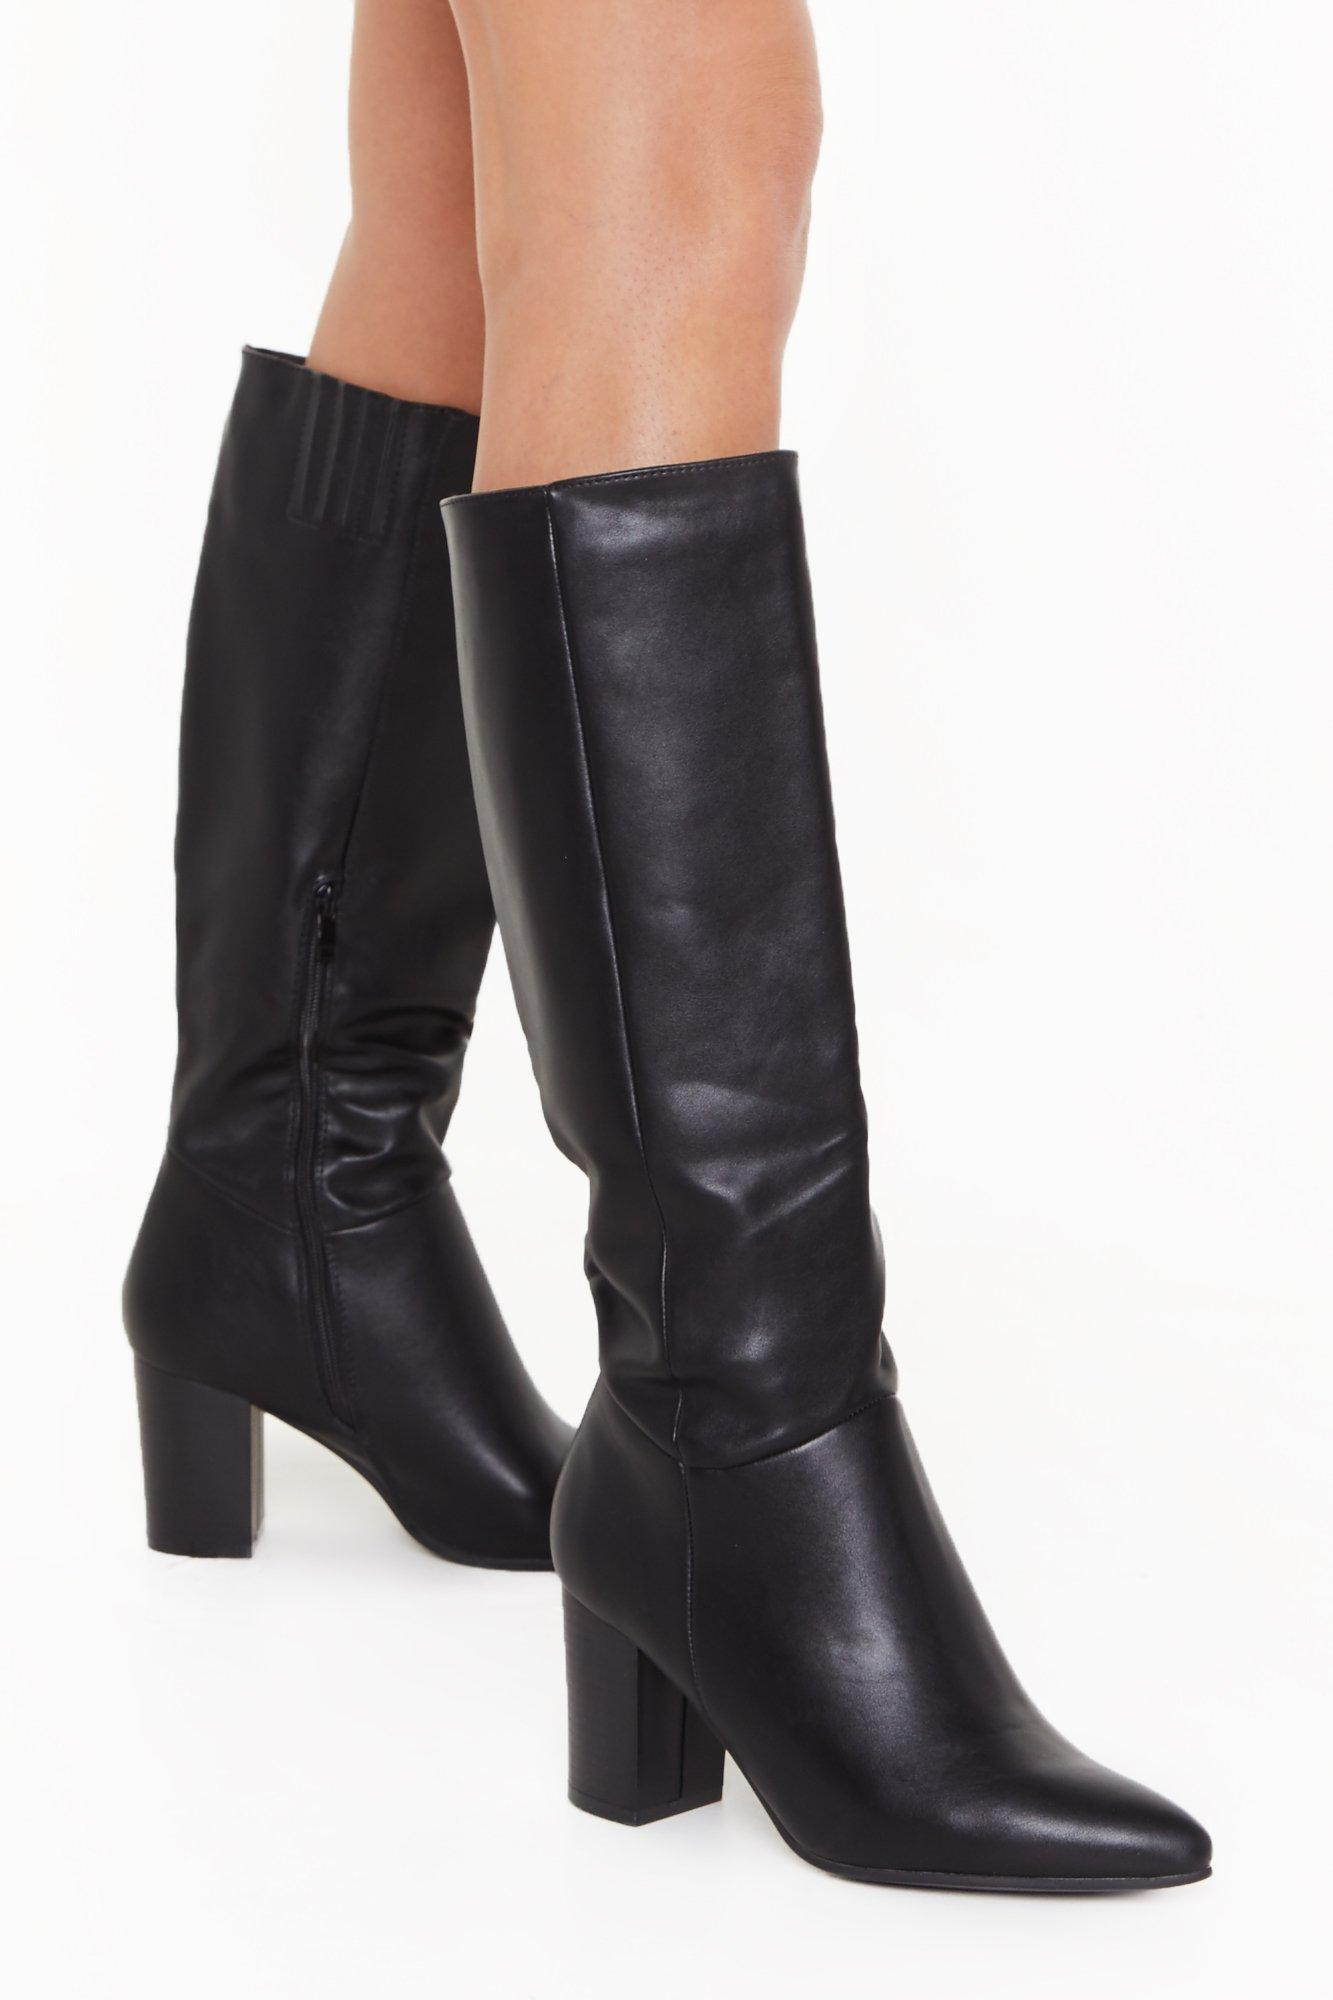 Image of Stay Groovy Heeled Knee-High Boots